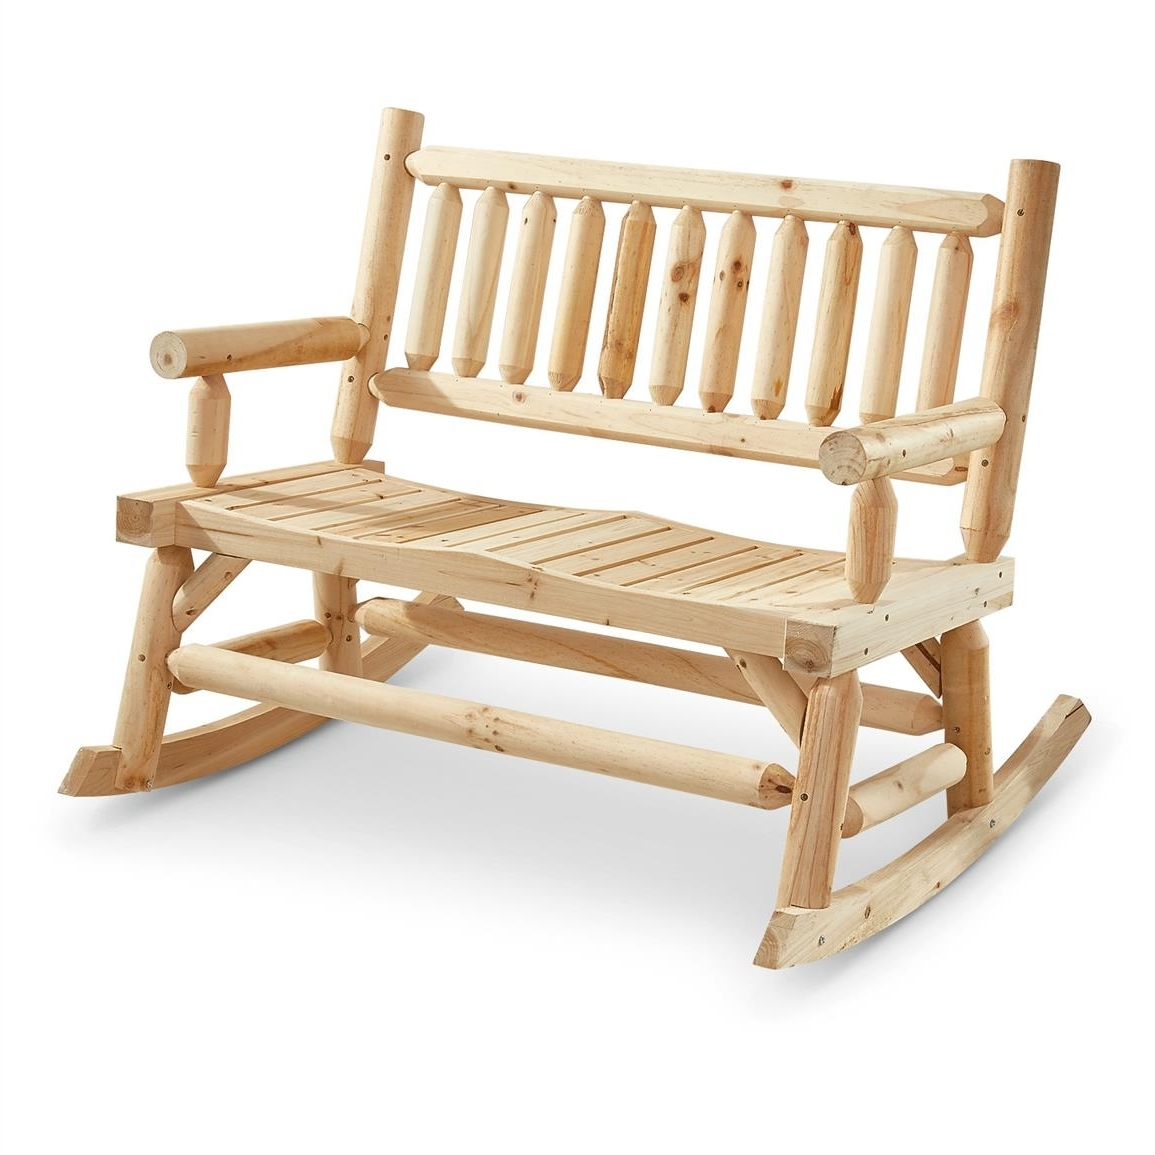 Castlecreek 2 Seat Wooden Rocking Bench – 657798, Patio Furniture At Inside Most Up To Date Patio Furniture Rocking Benches (View 3 of 15)